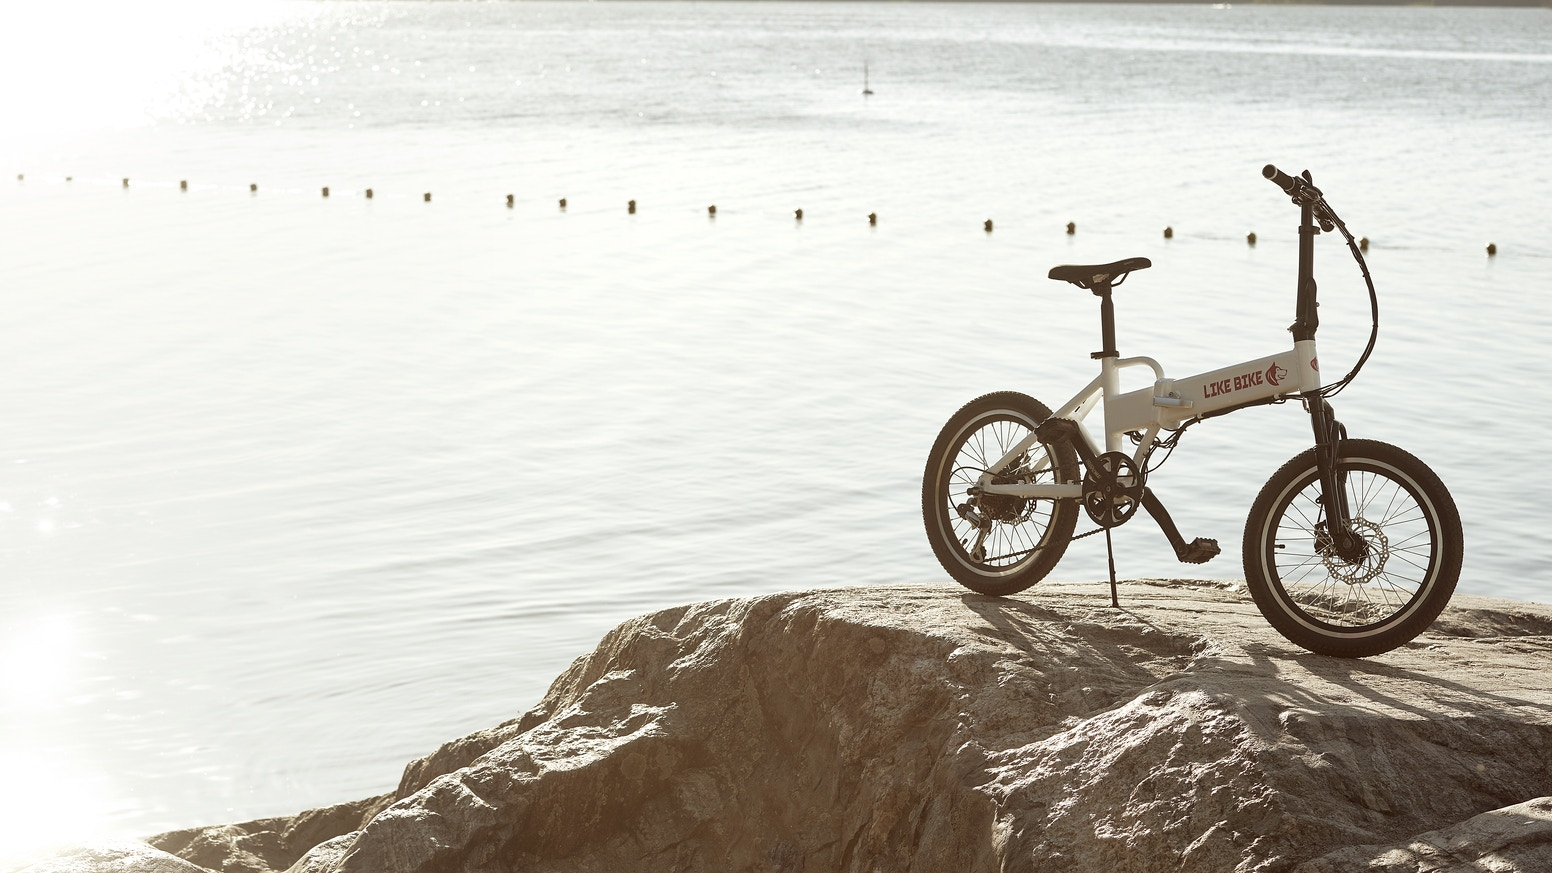 cd2e765f197 ... affordable electric bike! Follow us on Facebook or sign up to our  newsletter on our website for the latest